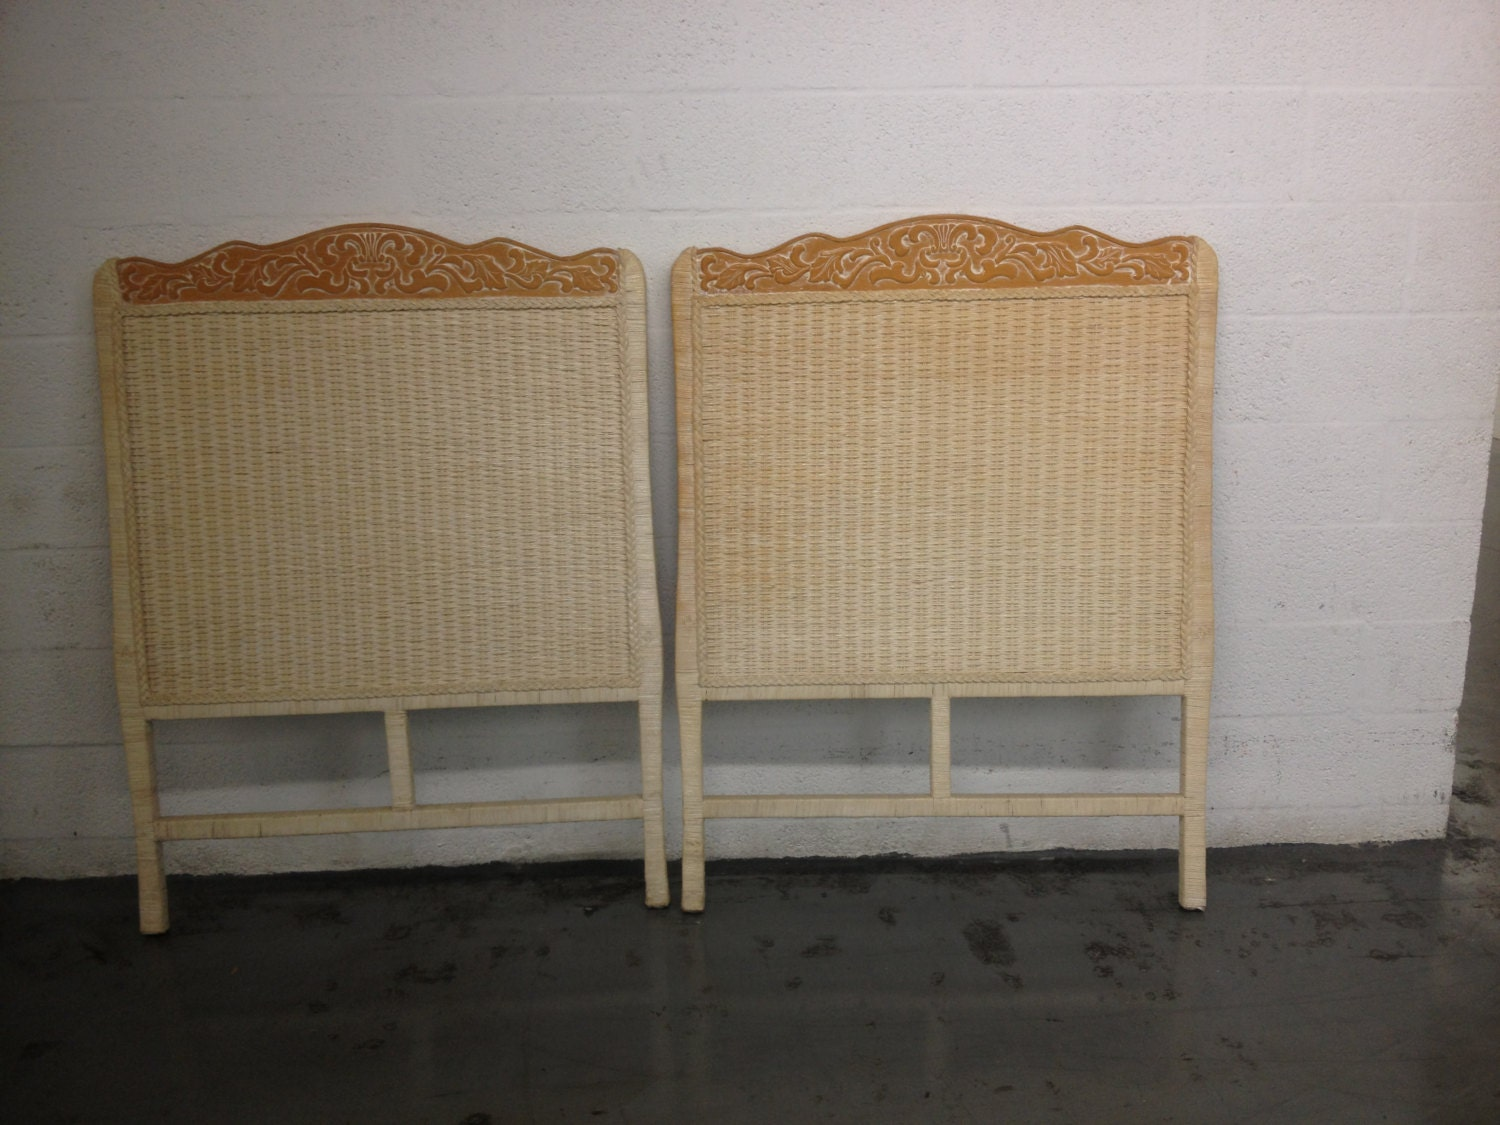 Vintage Pair Headboard Wicker Carving Wood White Distress Or Shabby Chic C